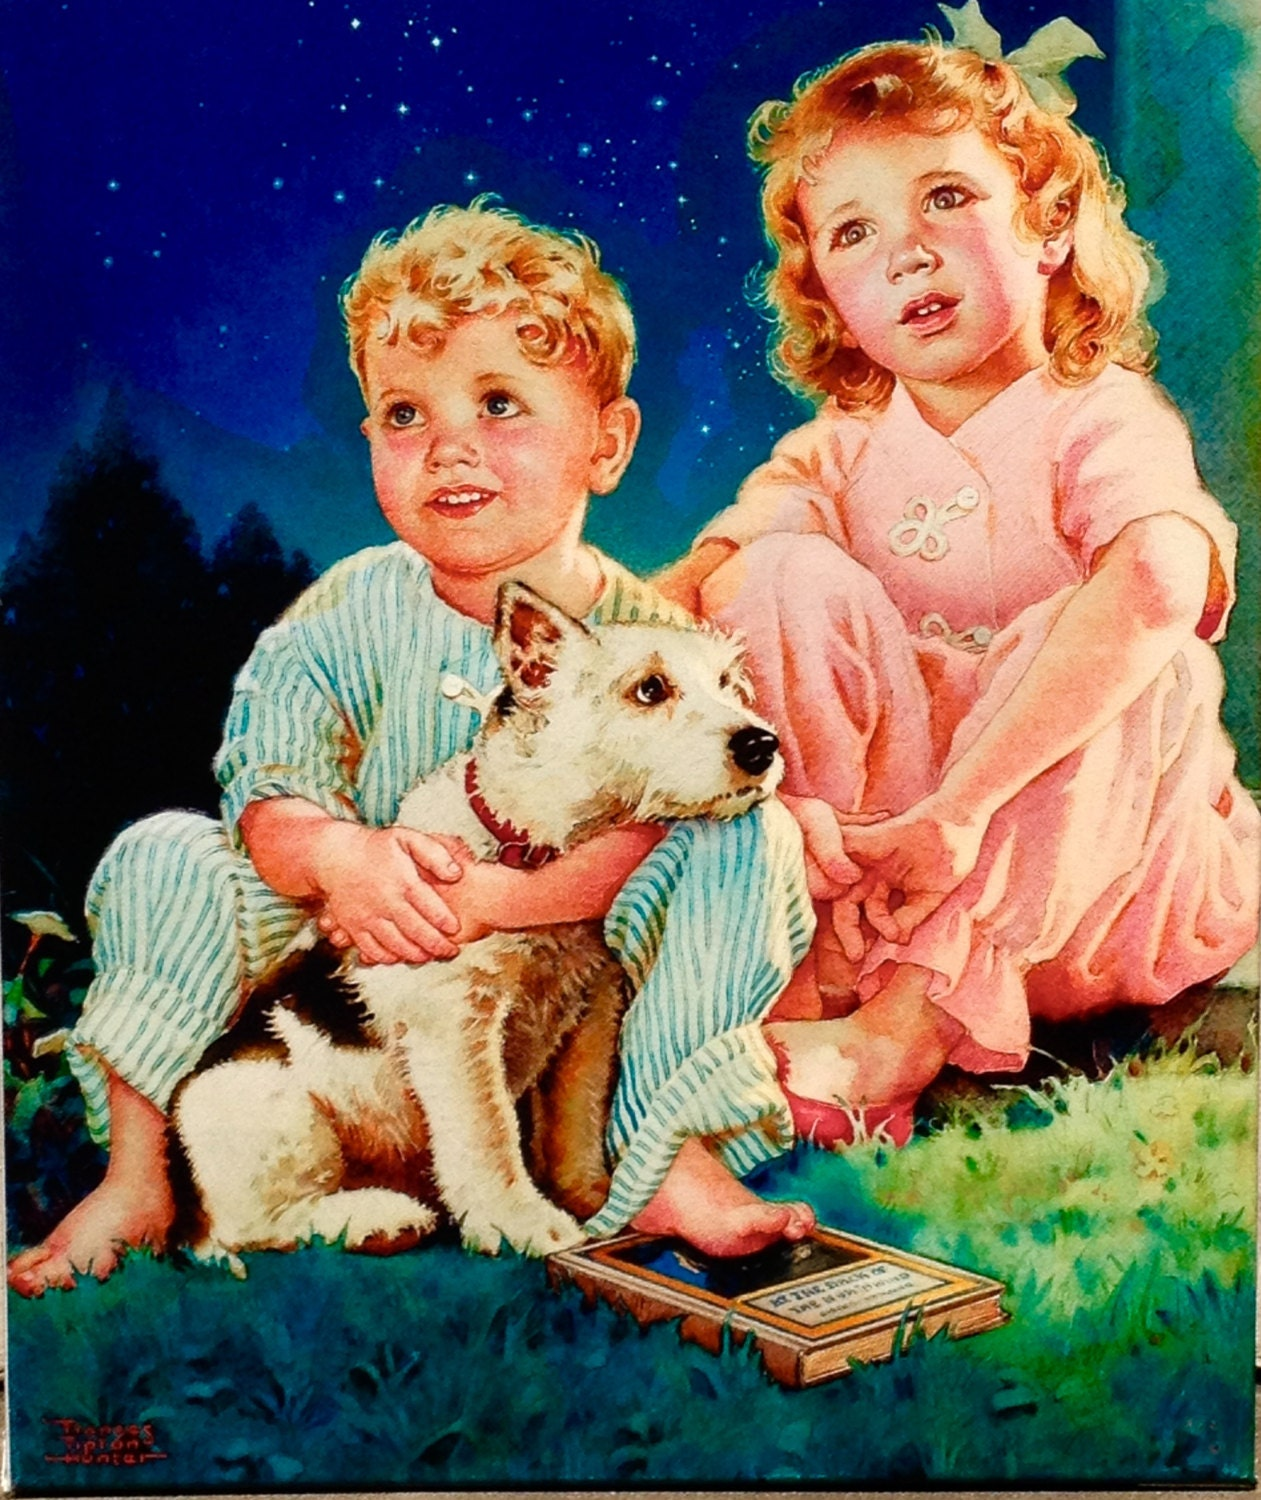 BEDTIME STORY by HUNTER 12X18 Little Girl and Boy with